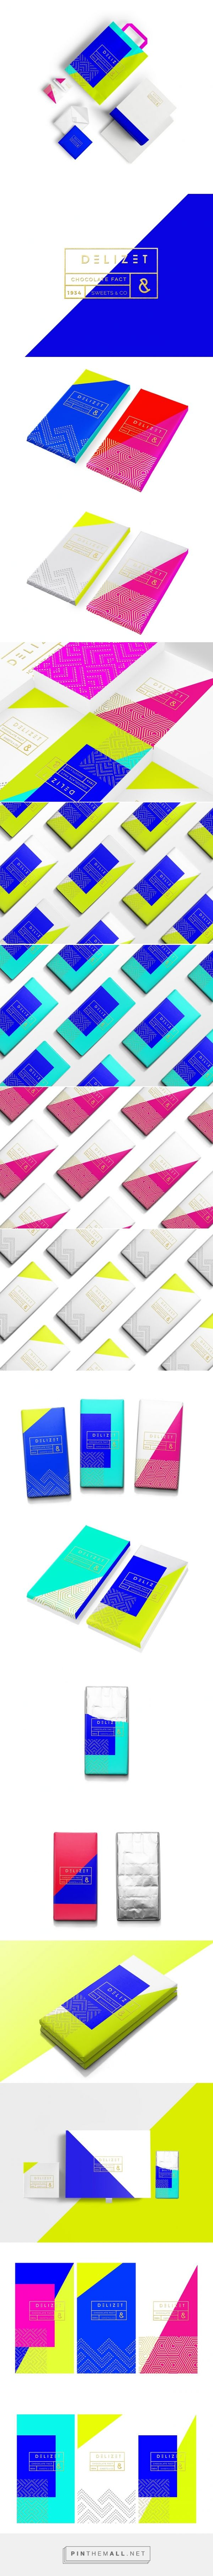 DELIZET CHOCOLAT FACT #chocolate #packaging by Marina Porté…